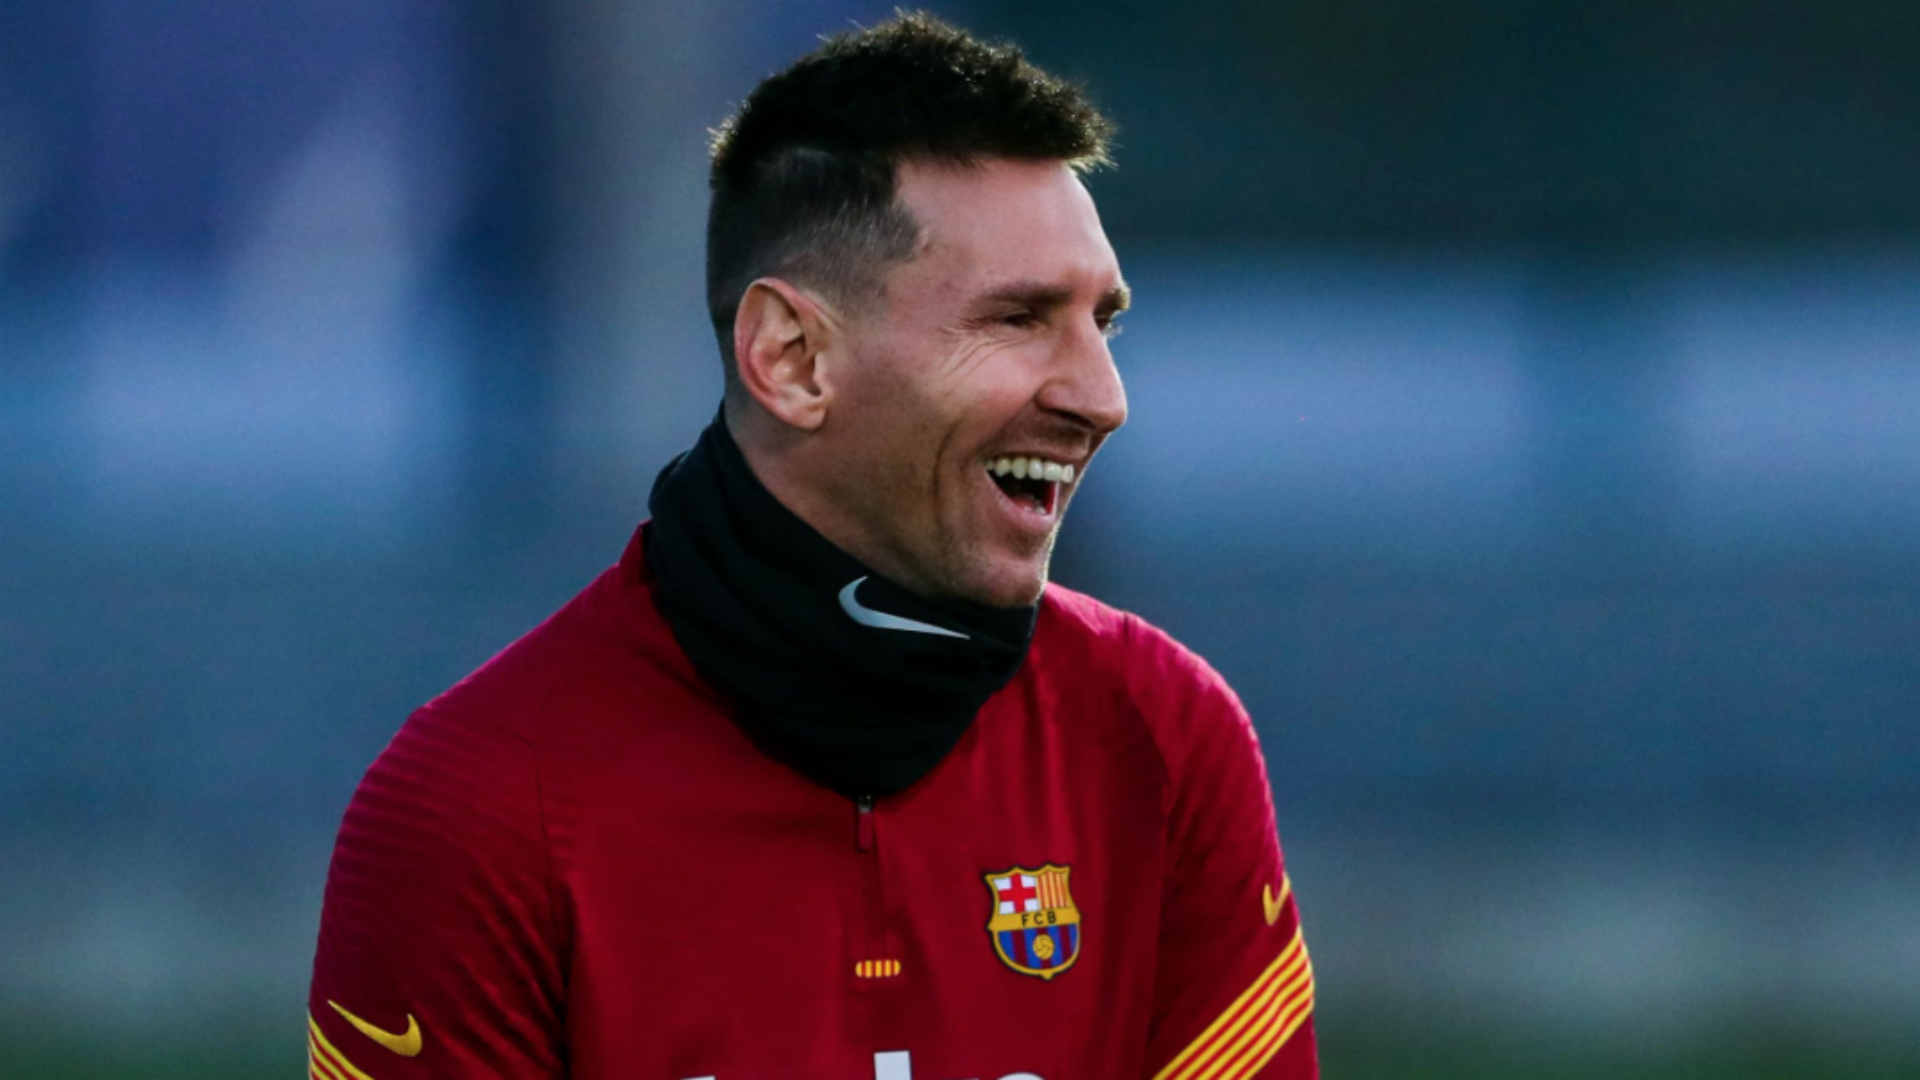 Messi surpasses Pele's record with 644th Barcelona goal